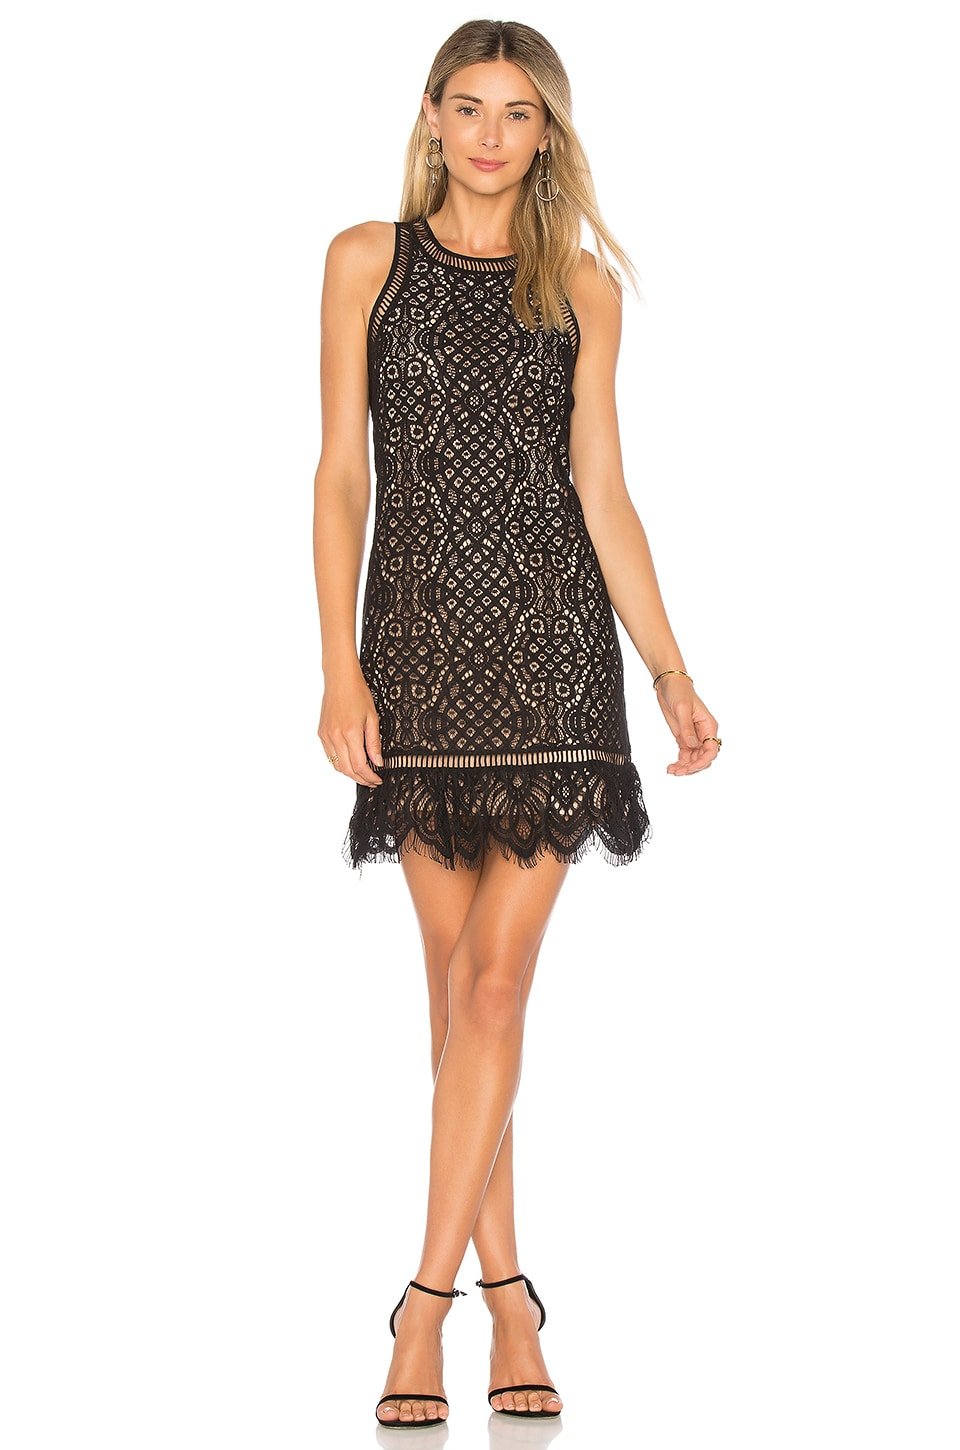 Lovers + Friends Caspian Nights Dress in Black